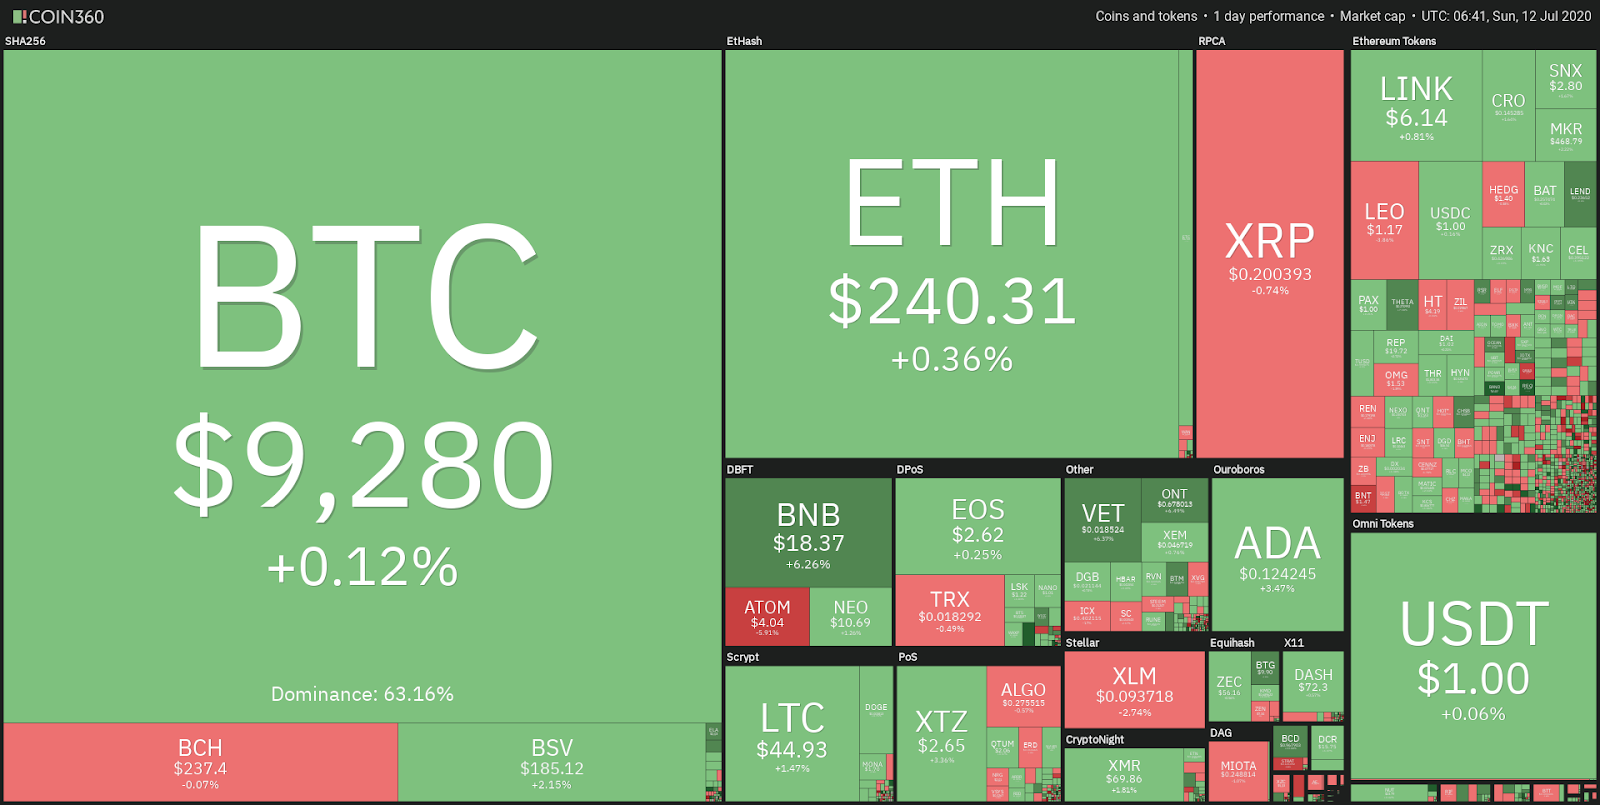 Daily performance of the crypto market